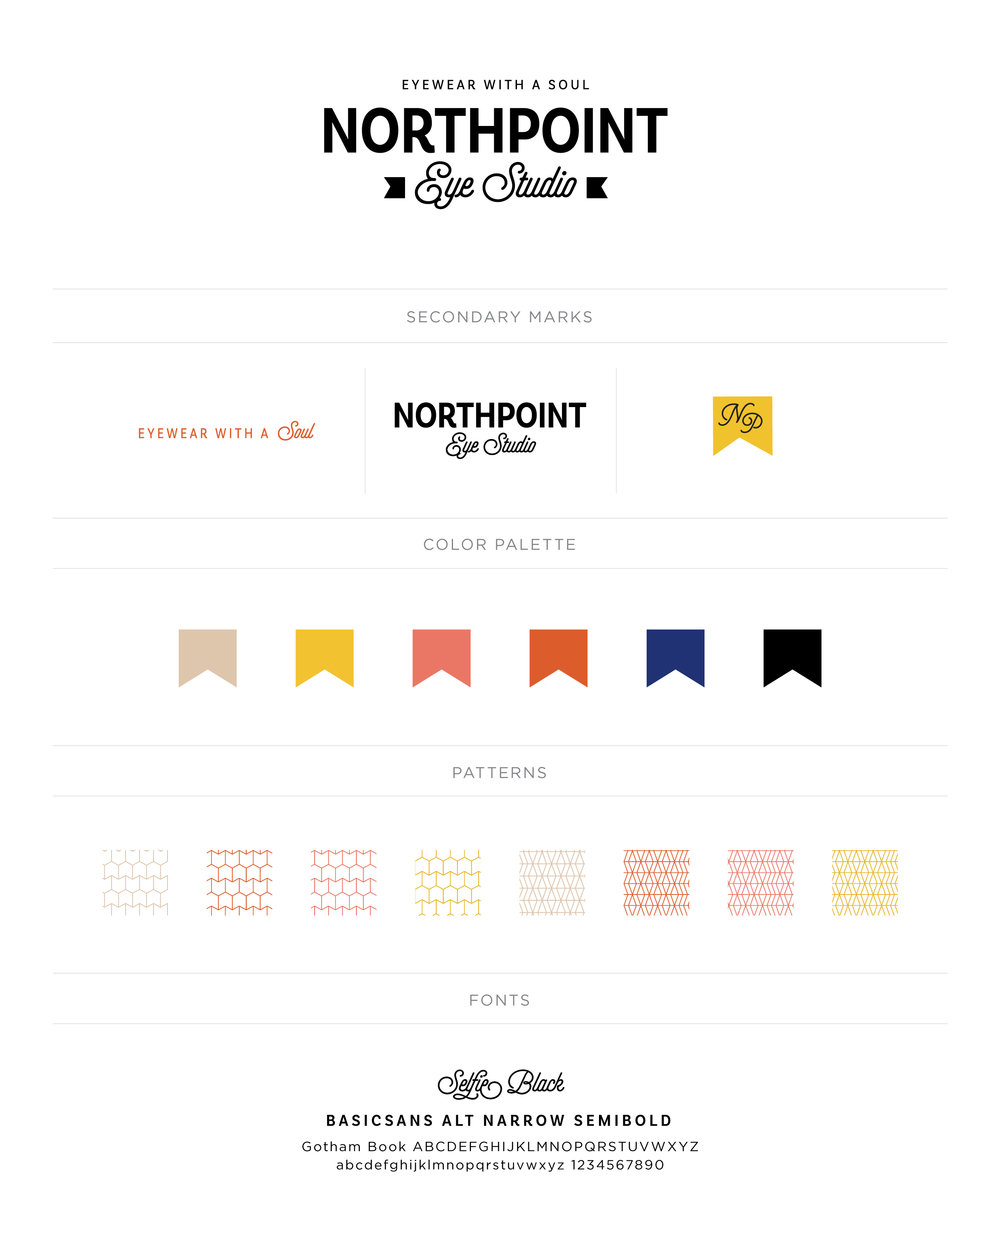 Brand Boards_Northpoint_BrandBoard.jpg